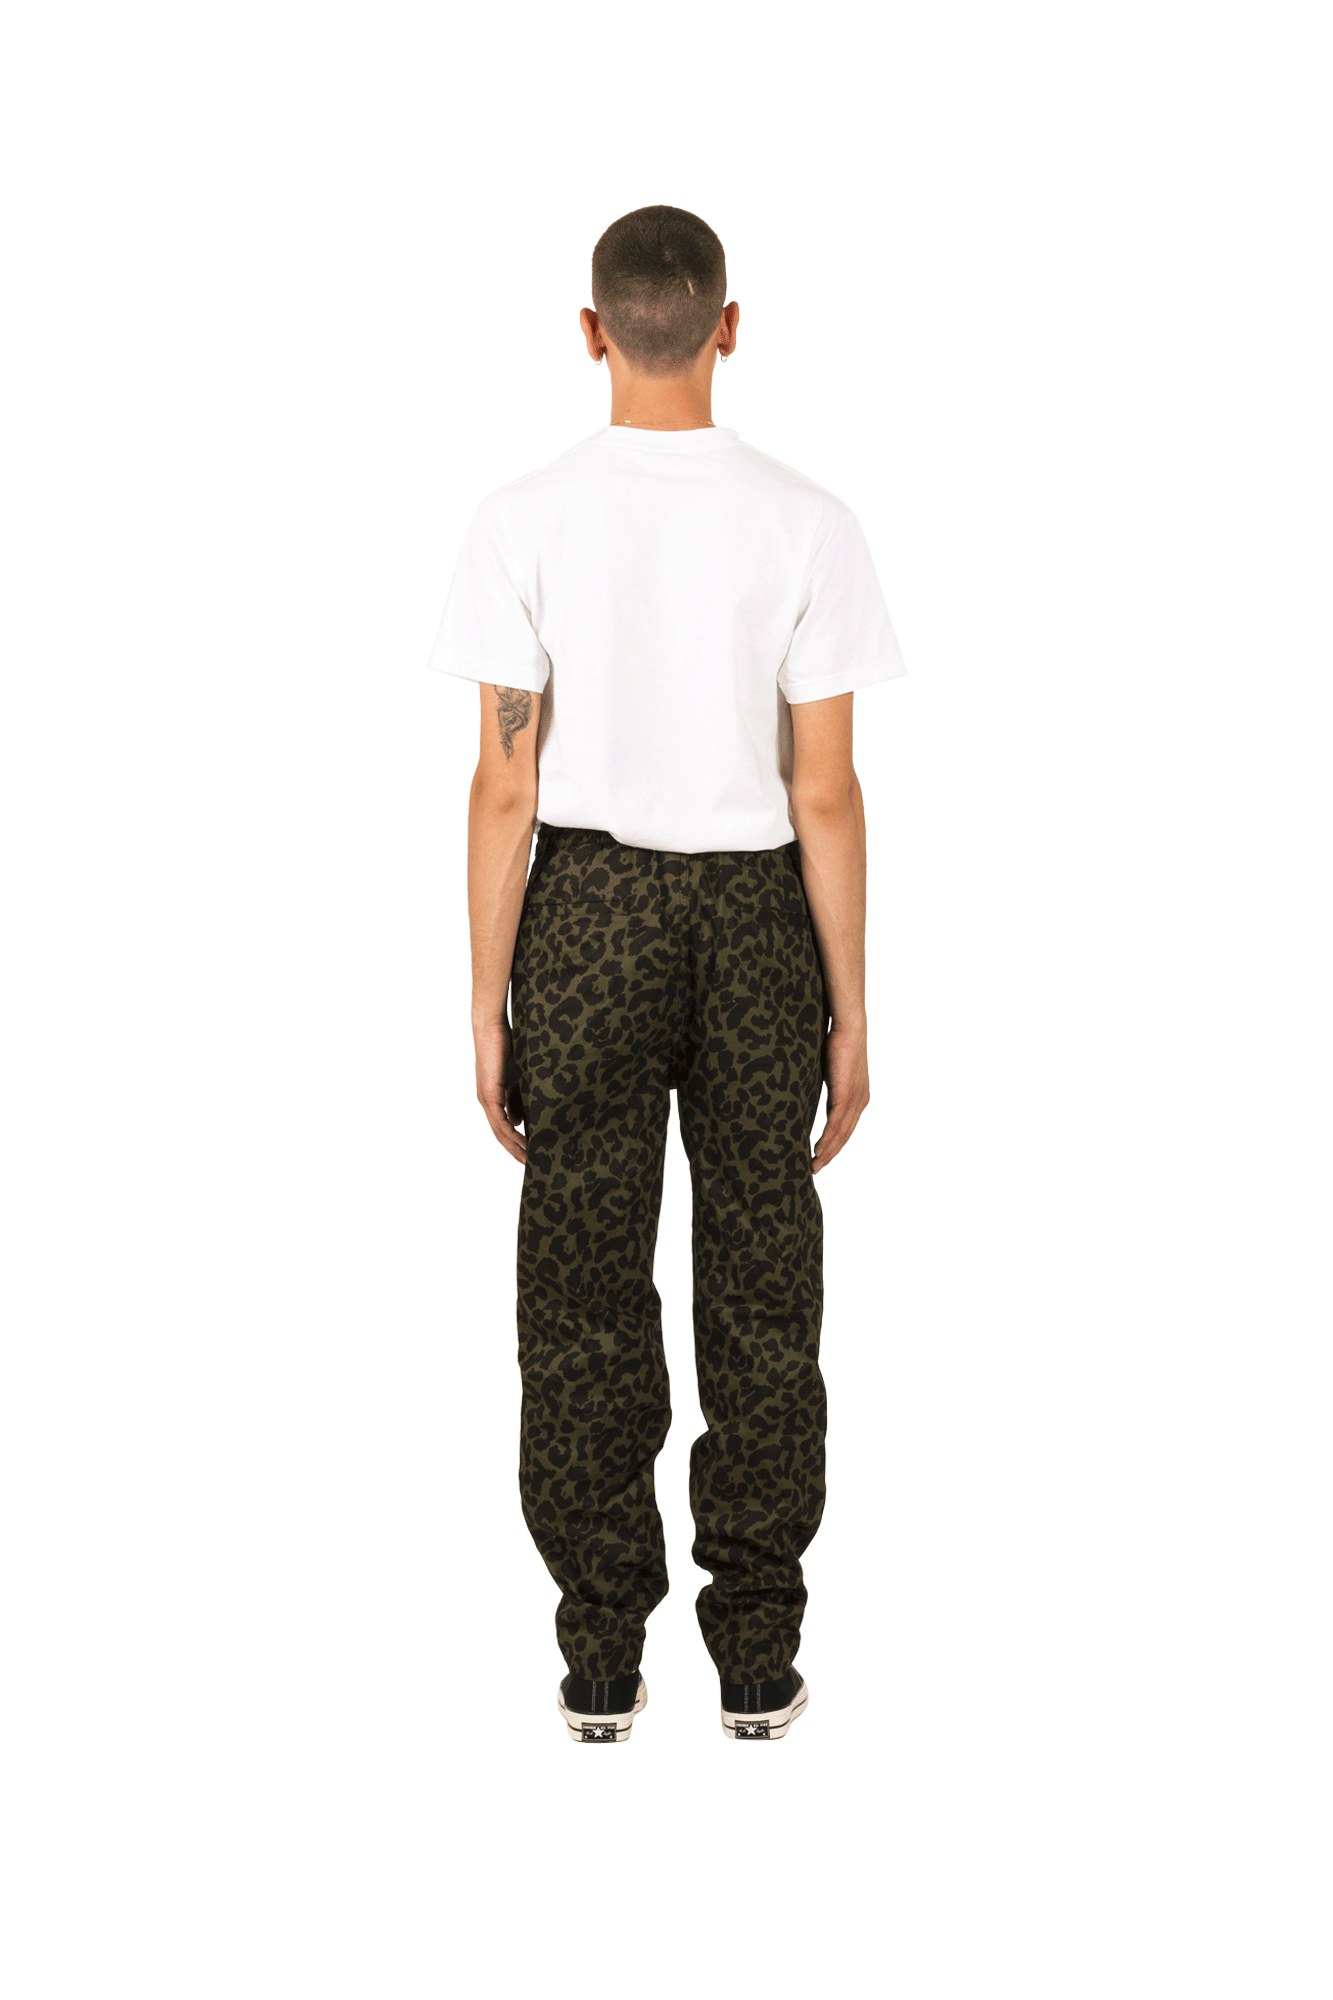 Pleasures Trousers Leopard Beach Pant Green P19S104010#020#GRN#S - One Block Down